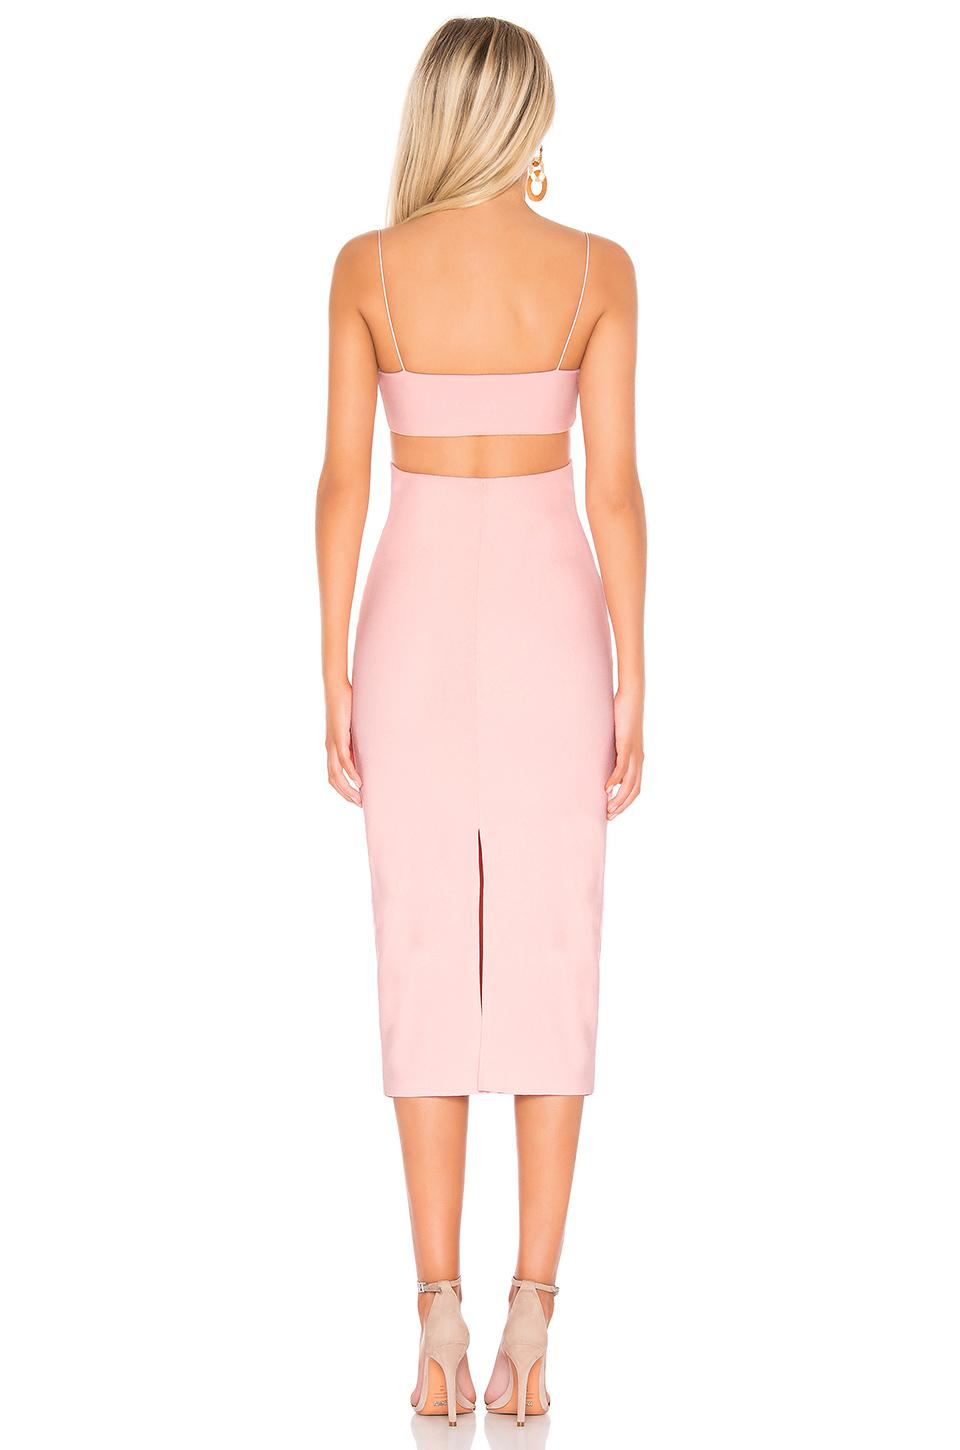 Bec and bridge cut out bodycon dress